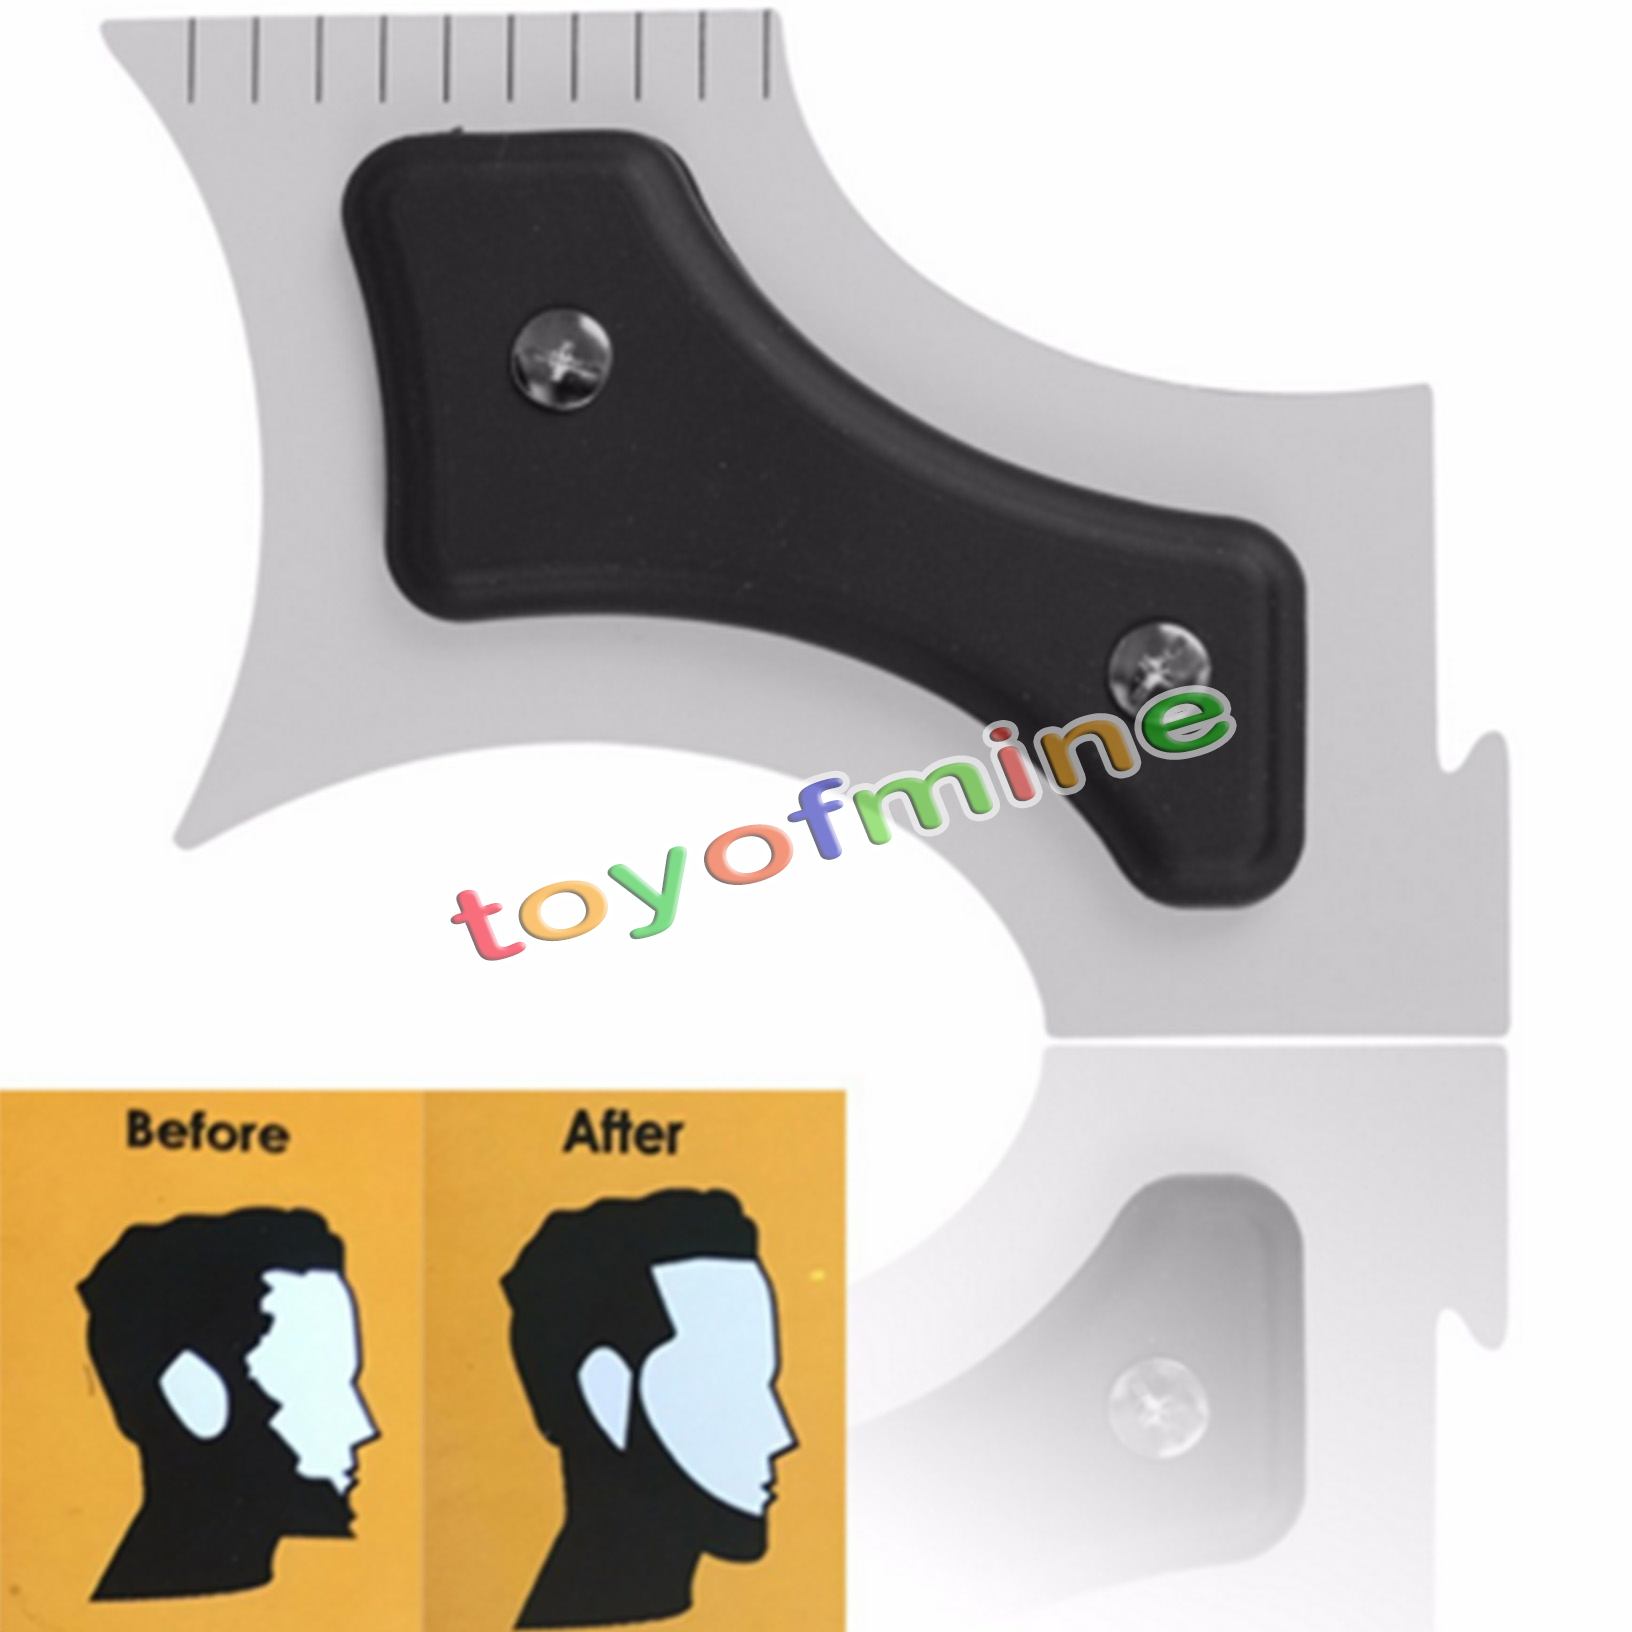 hairline beard trimmer shaping edging guide tool hair mustache cut template ebay. Black Bedroom Furniture Sets. Home Design Ideas